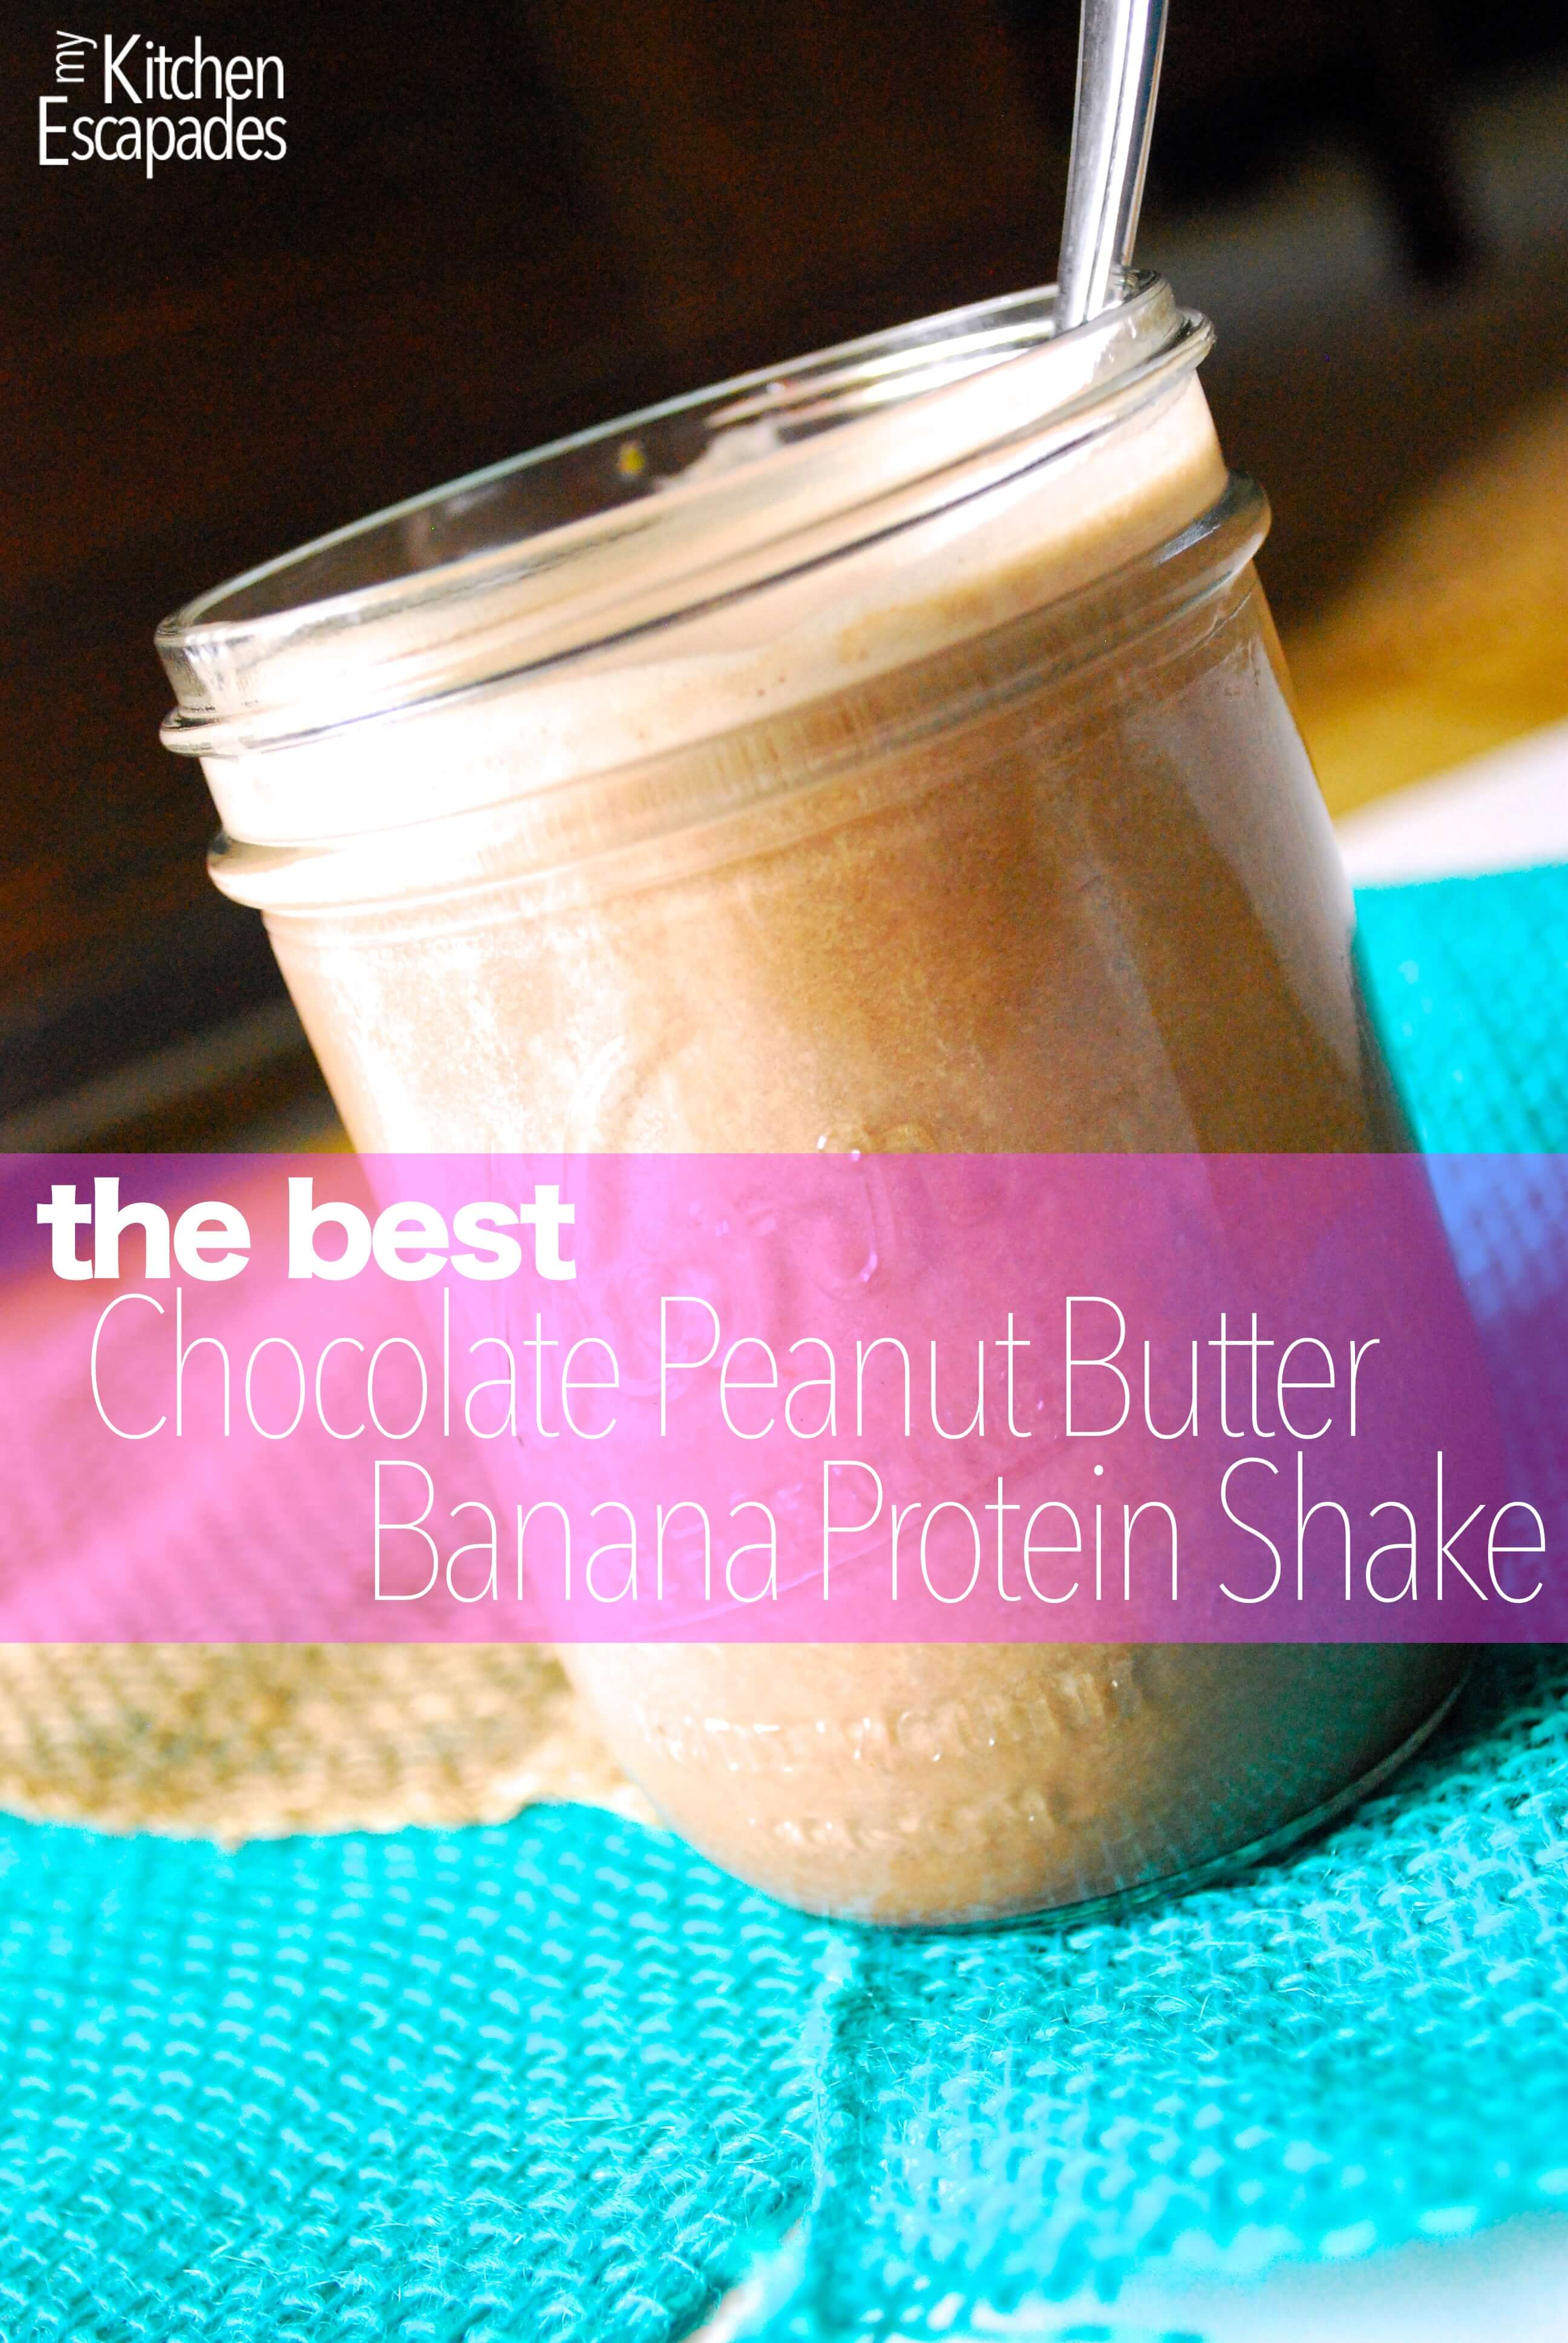 Best Chocolate Peanut Butter Banana Protein Smoothie